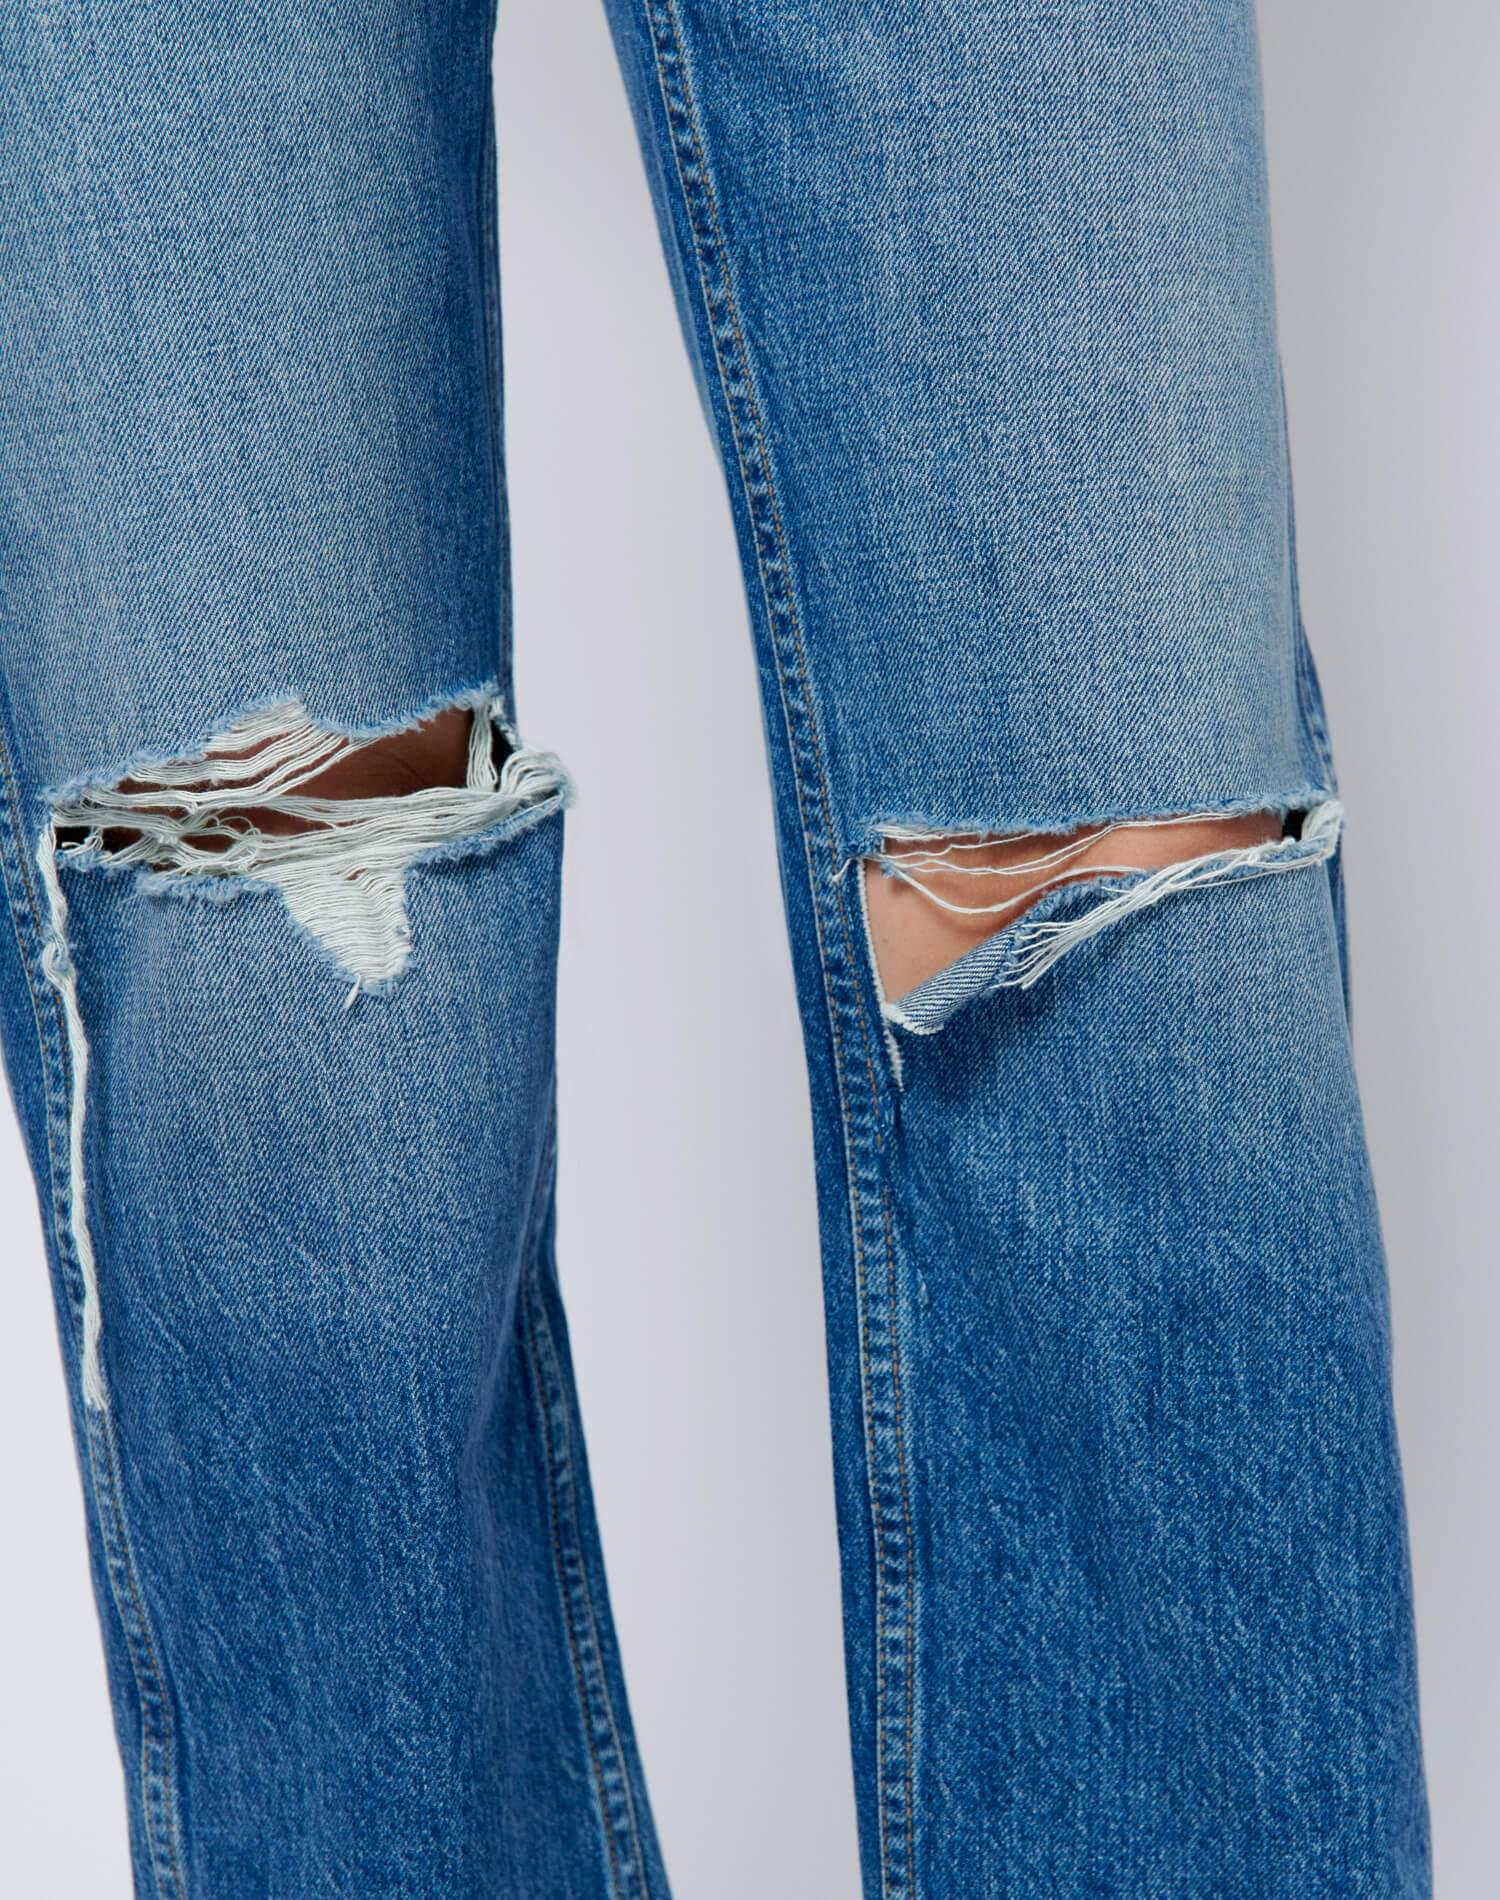 High Rise Loose - Washed Indigo with Rips 4